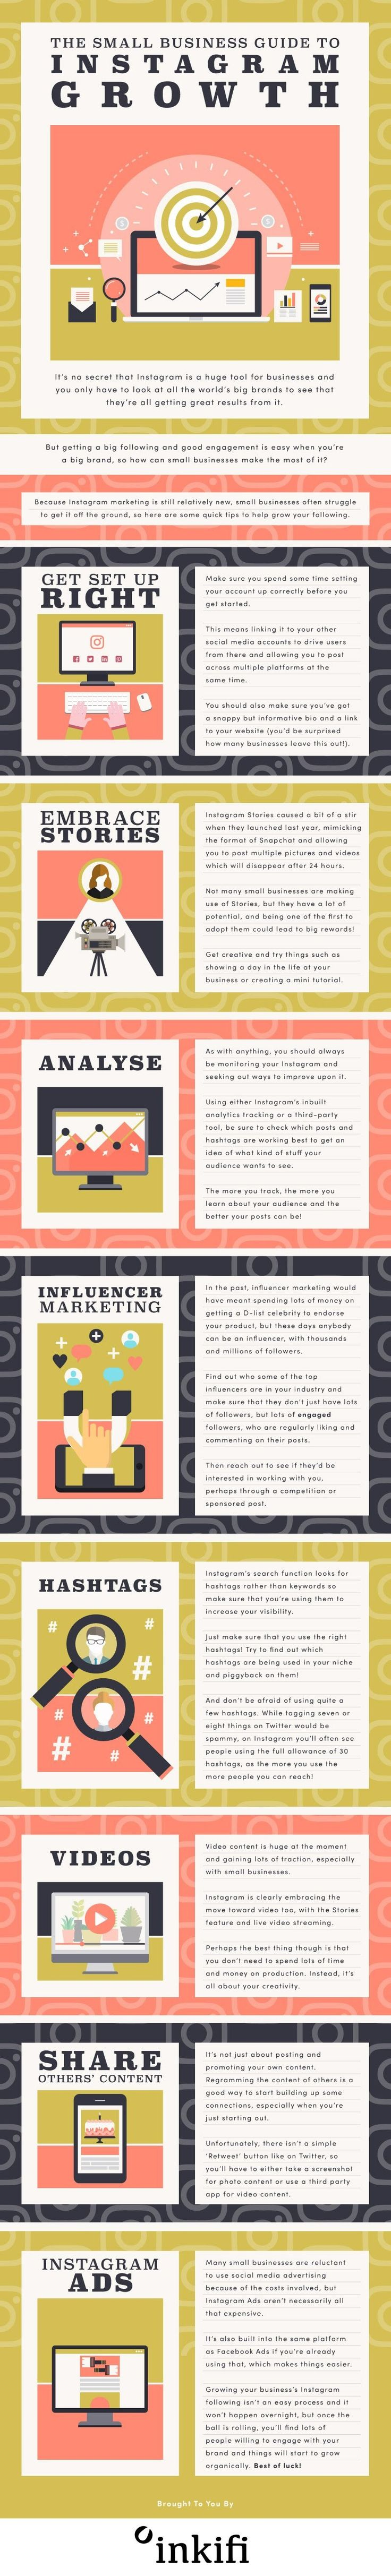 The Small Business Guide to Instagram Growth - #infographic